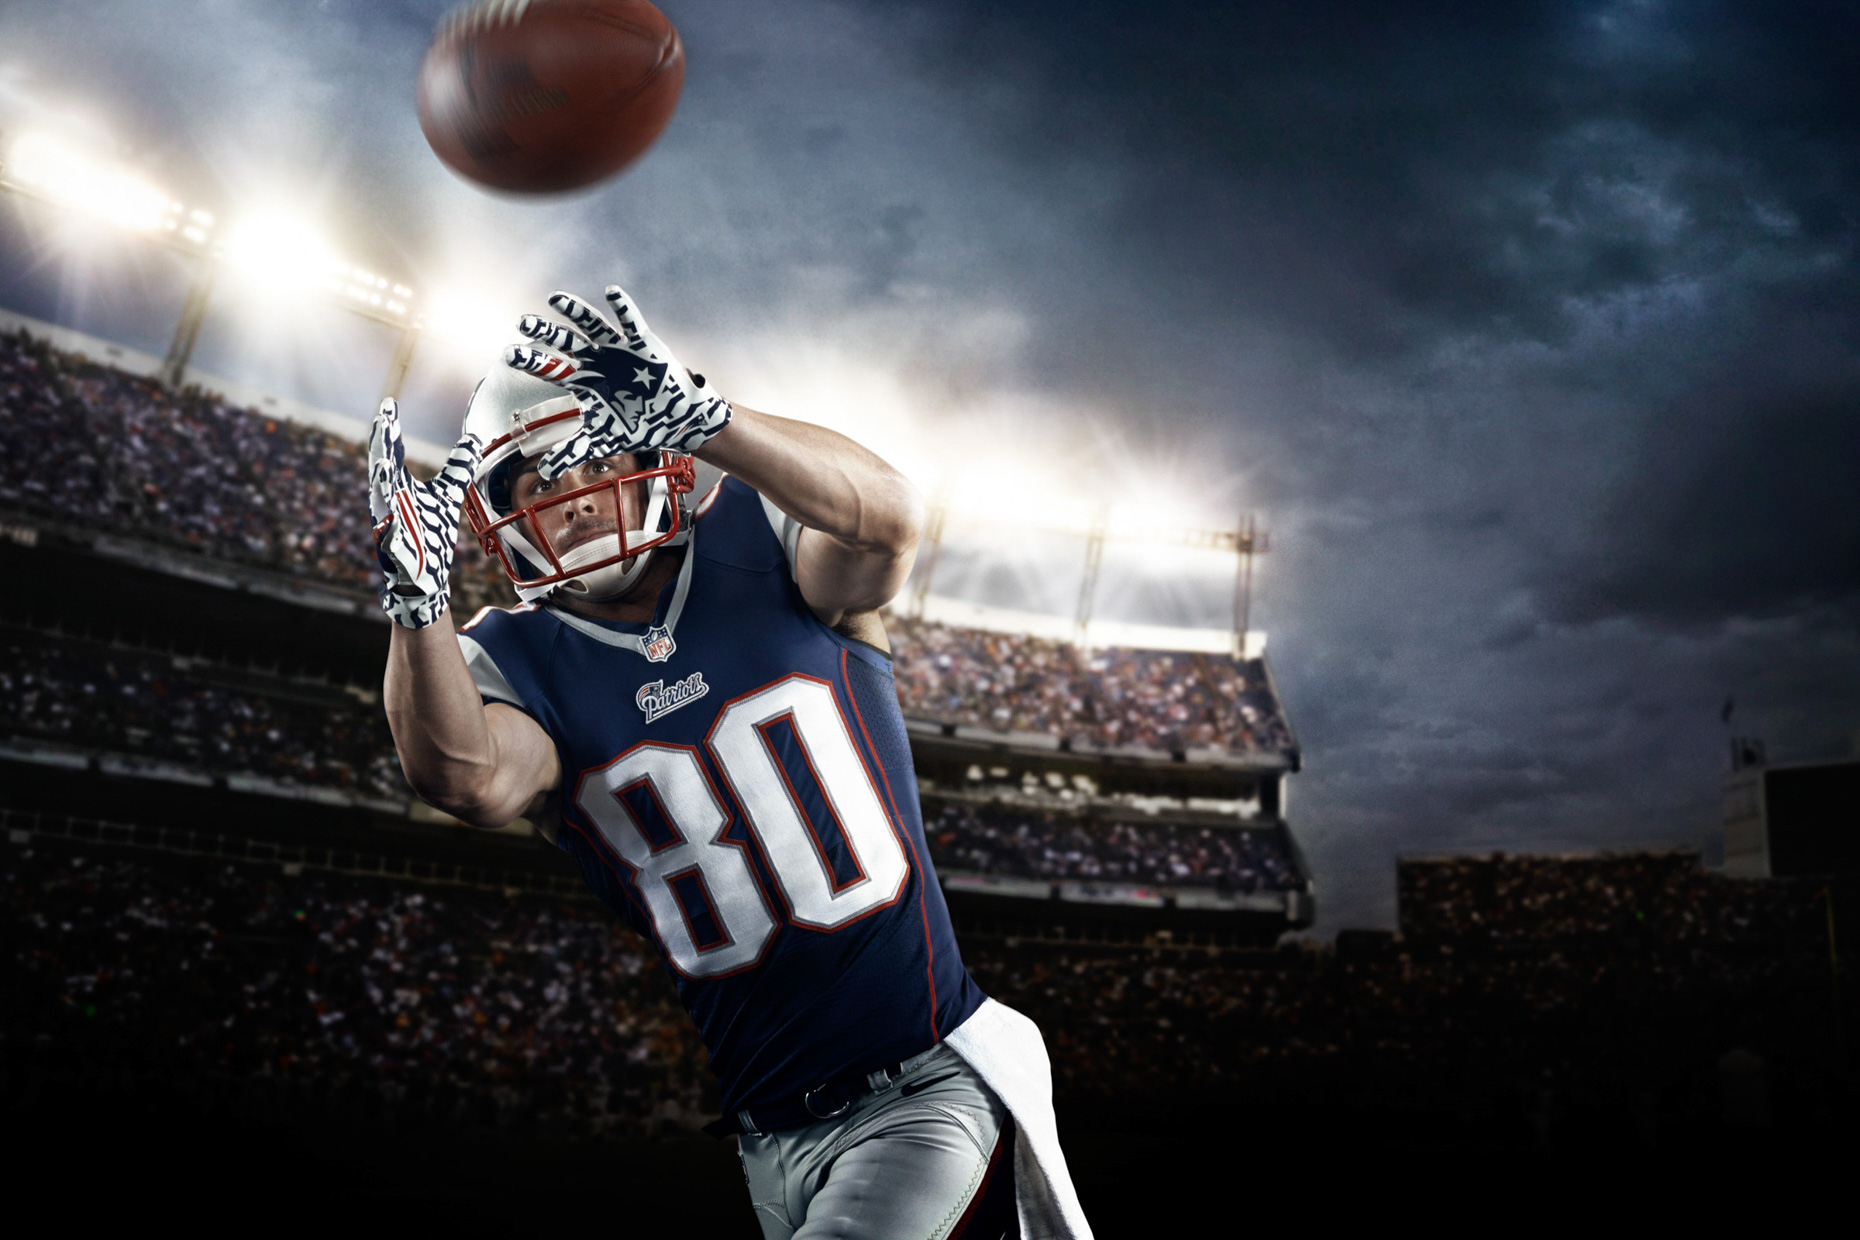 Danny Amendola / New England Patriots for Verizon NFL